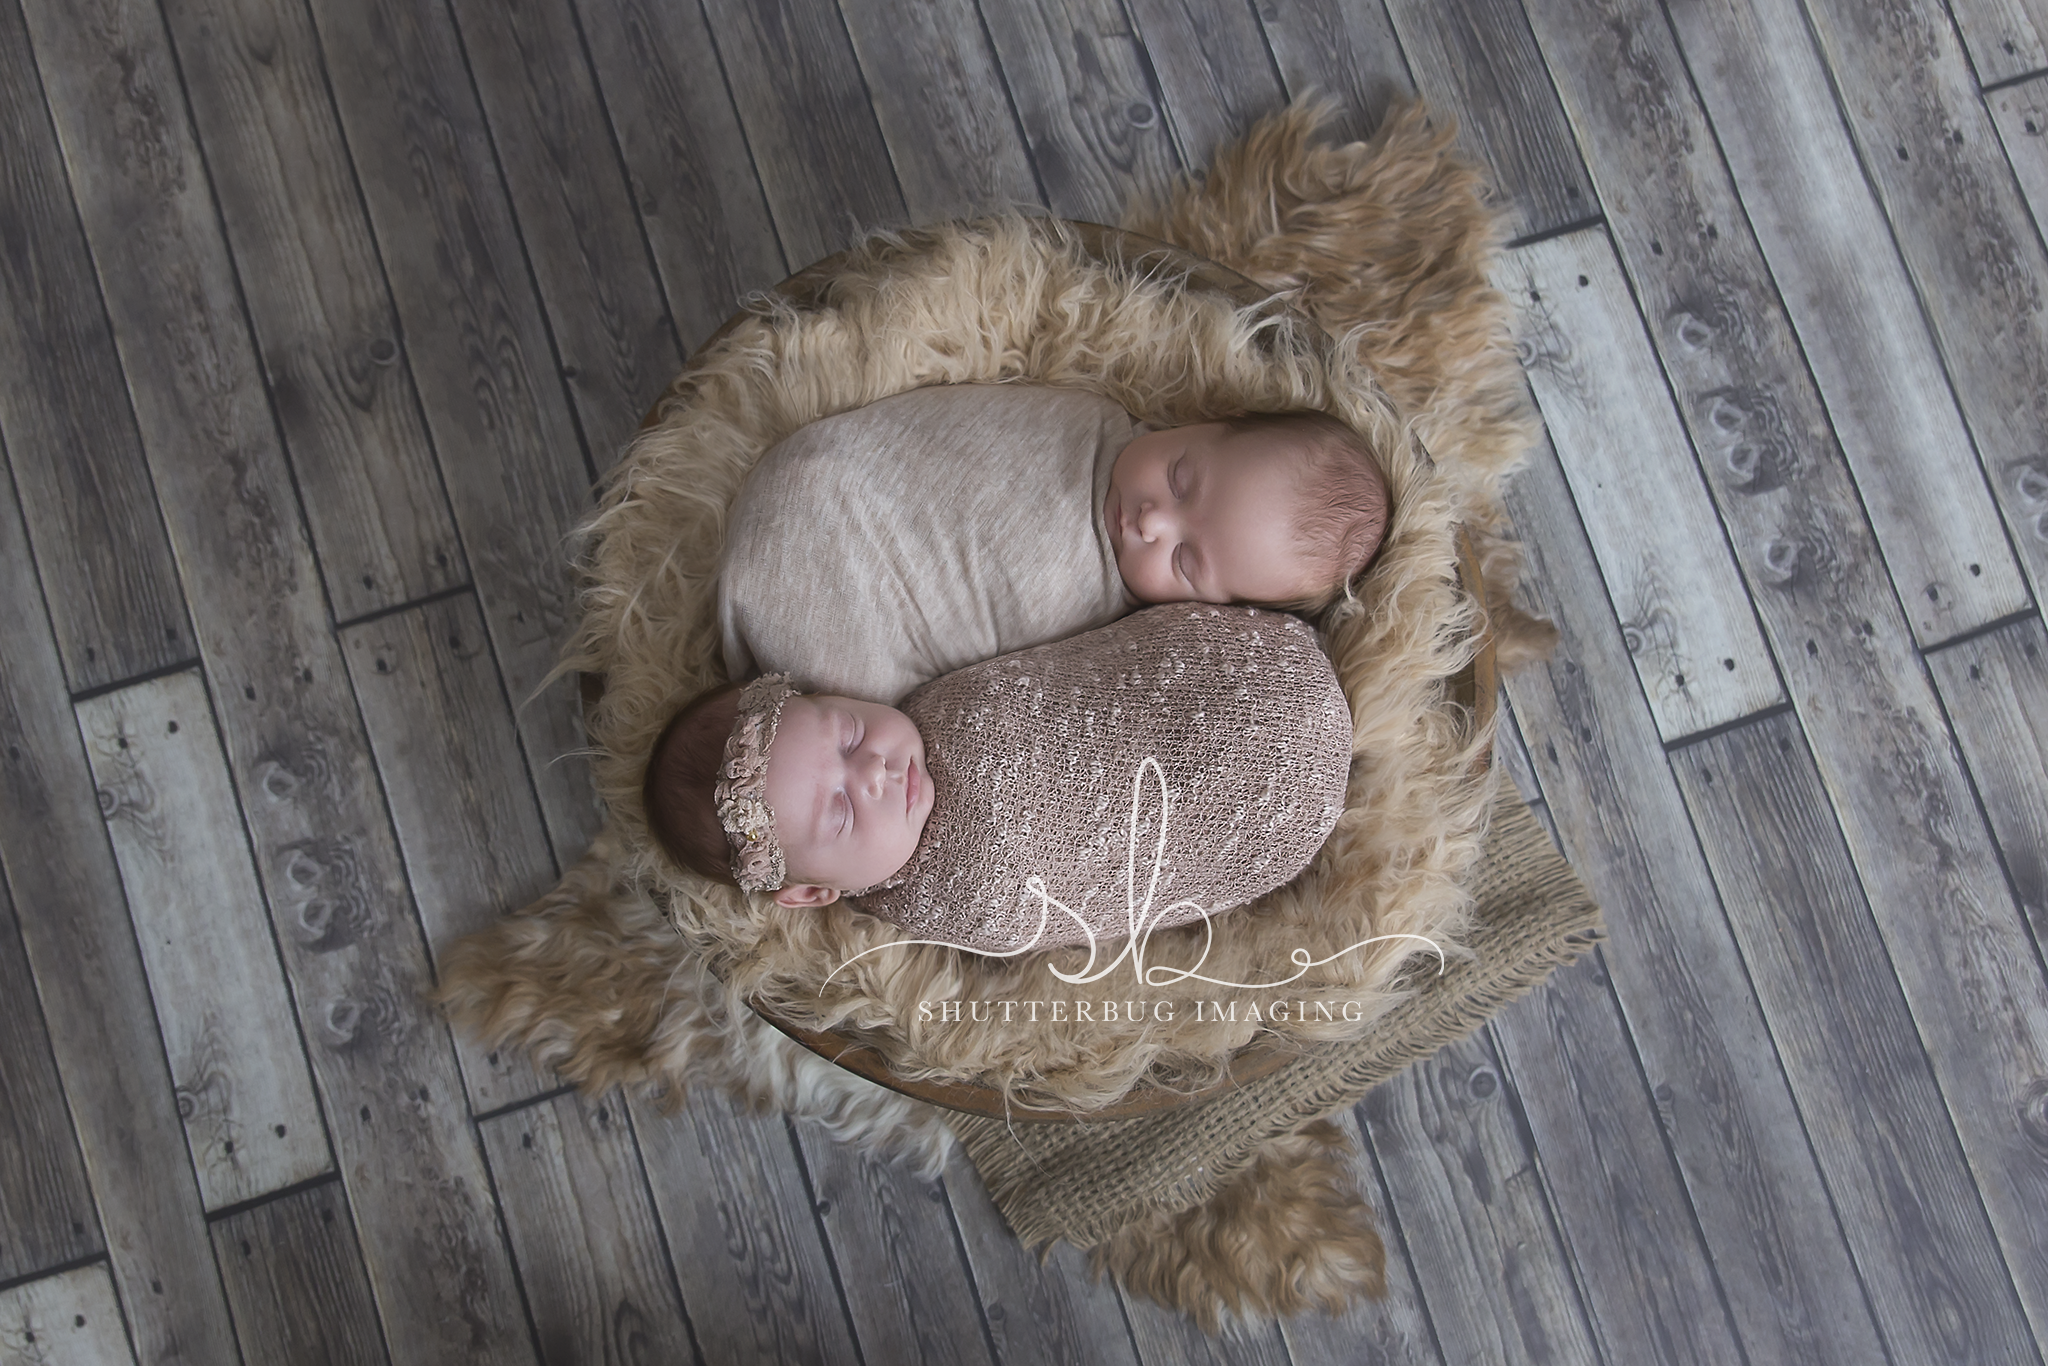 Newborn-Photography-in-Durham-Region-Clarington-GTA-Shutterbug-Imaging87